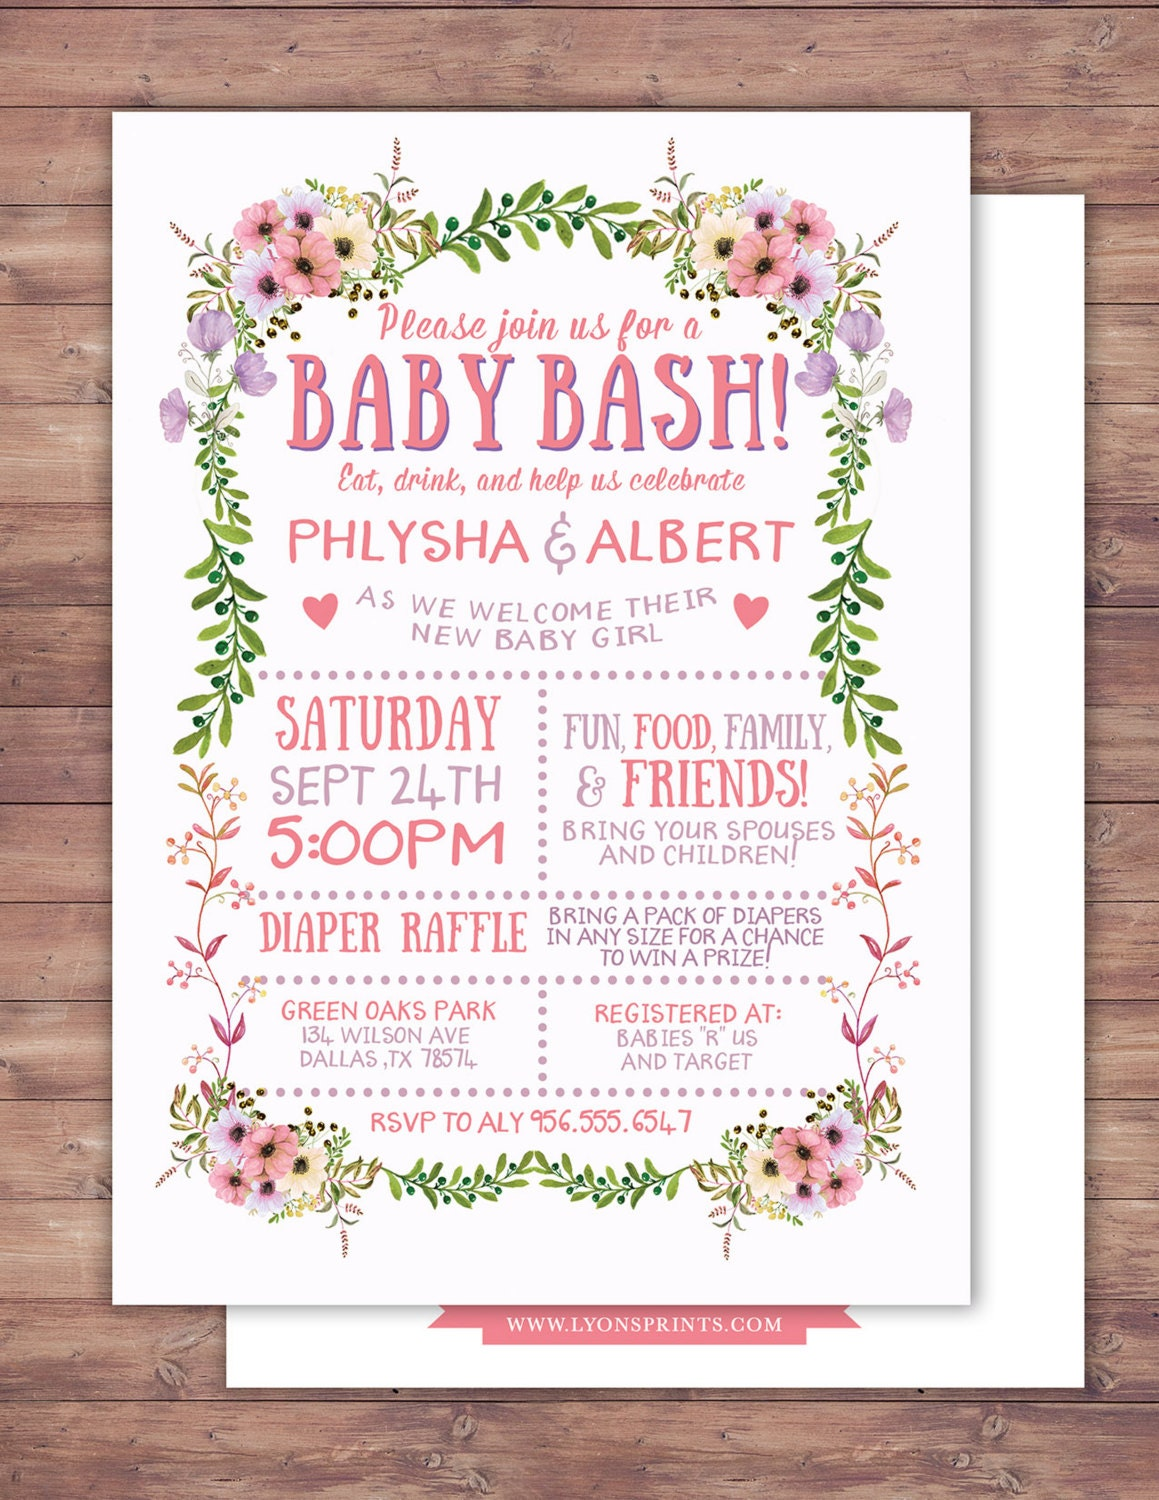 floral rustic boho babyq chalkboard couples coed baby shower bbq invitation babyq boy girl baby is brewing baby girl shower